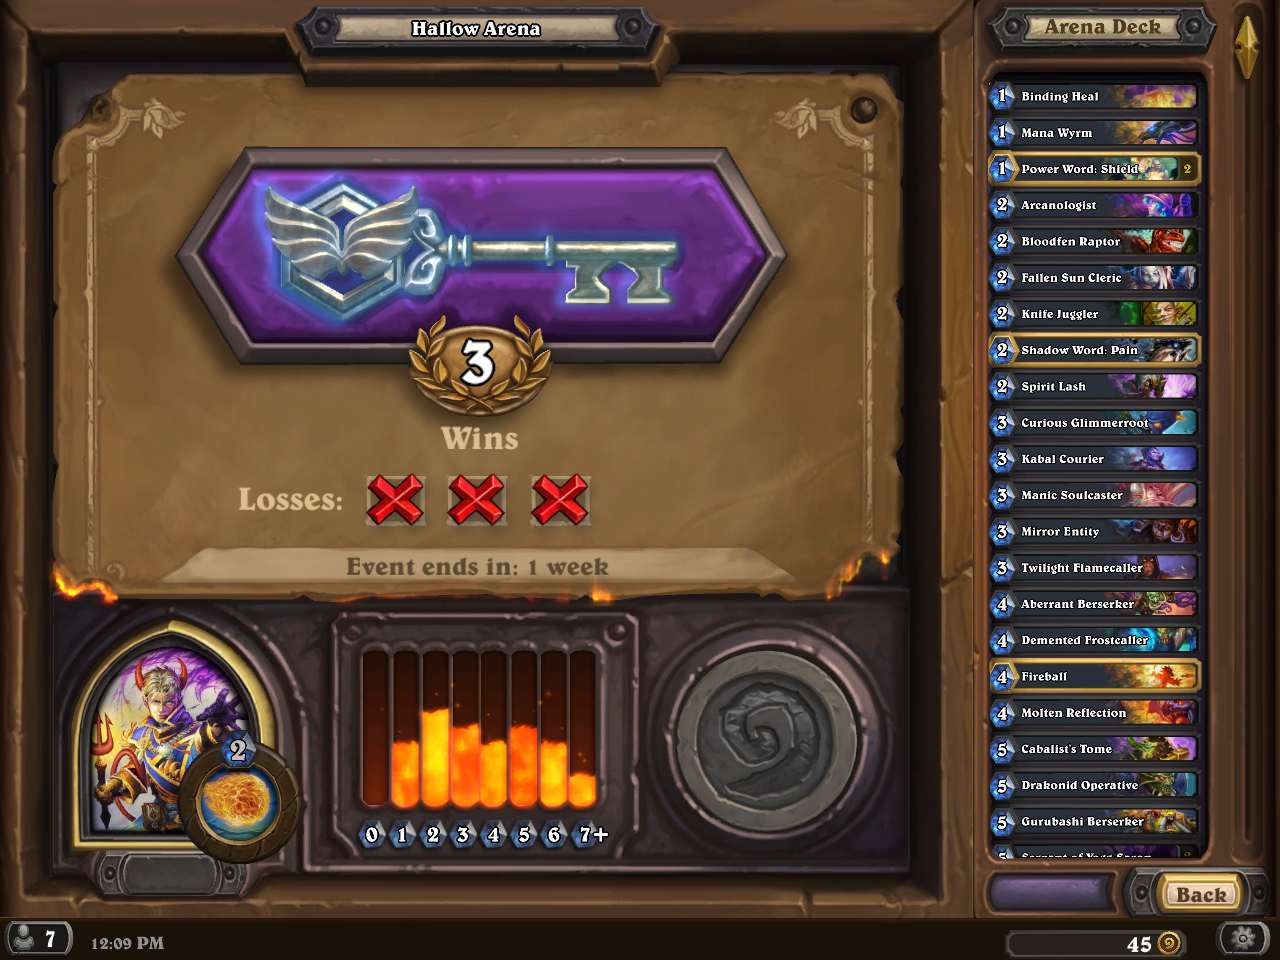 Arena Bug: Run ends on 2 loses, not 3  - The Arena